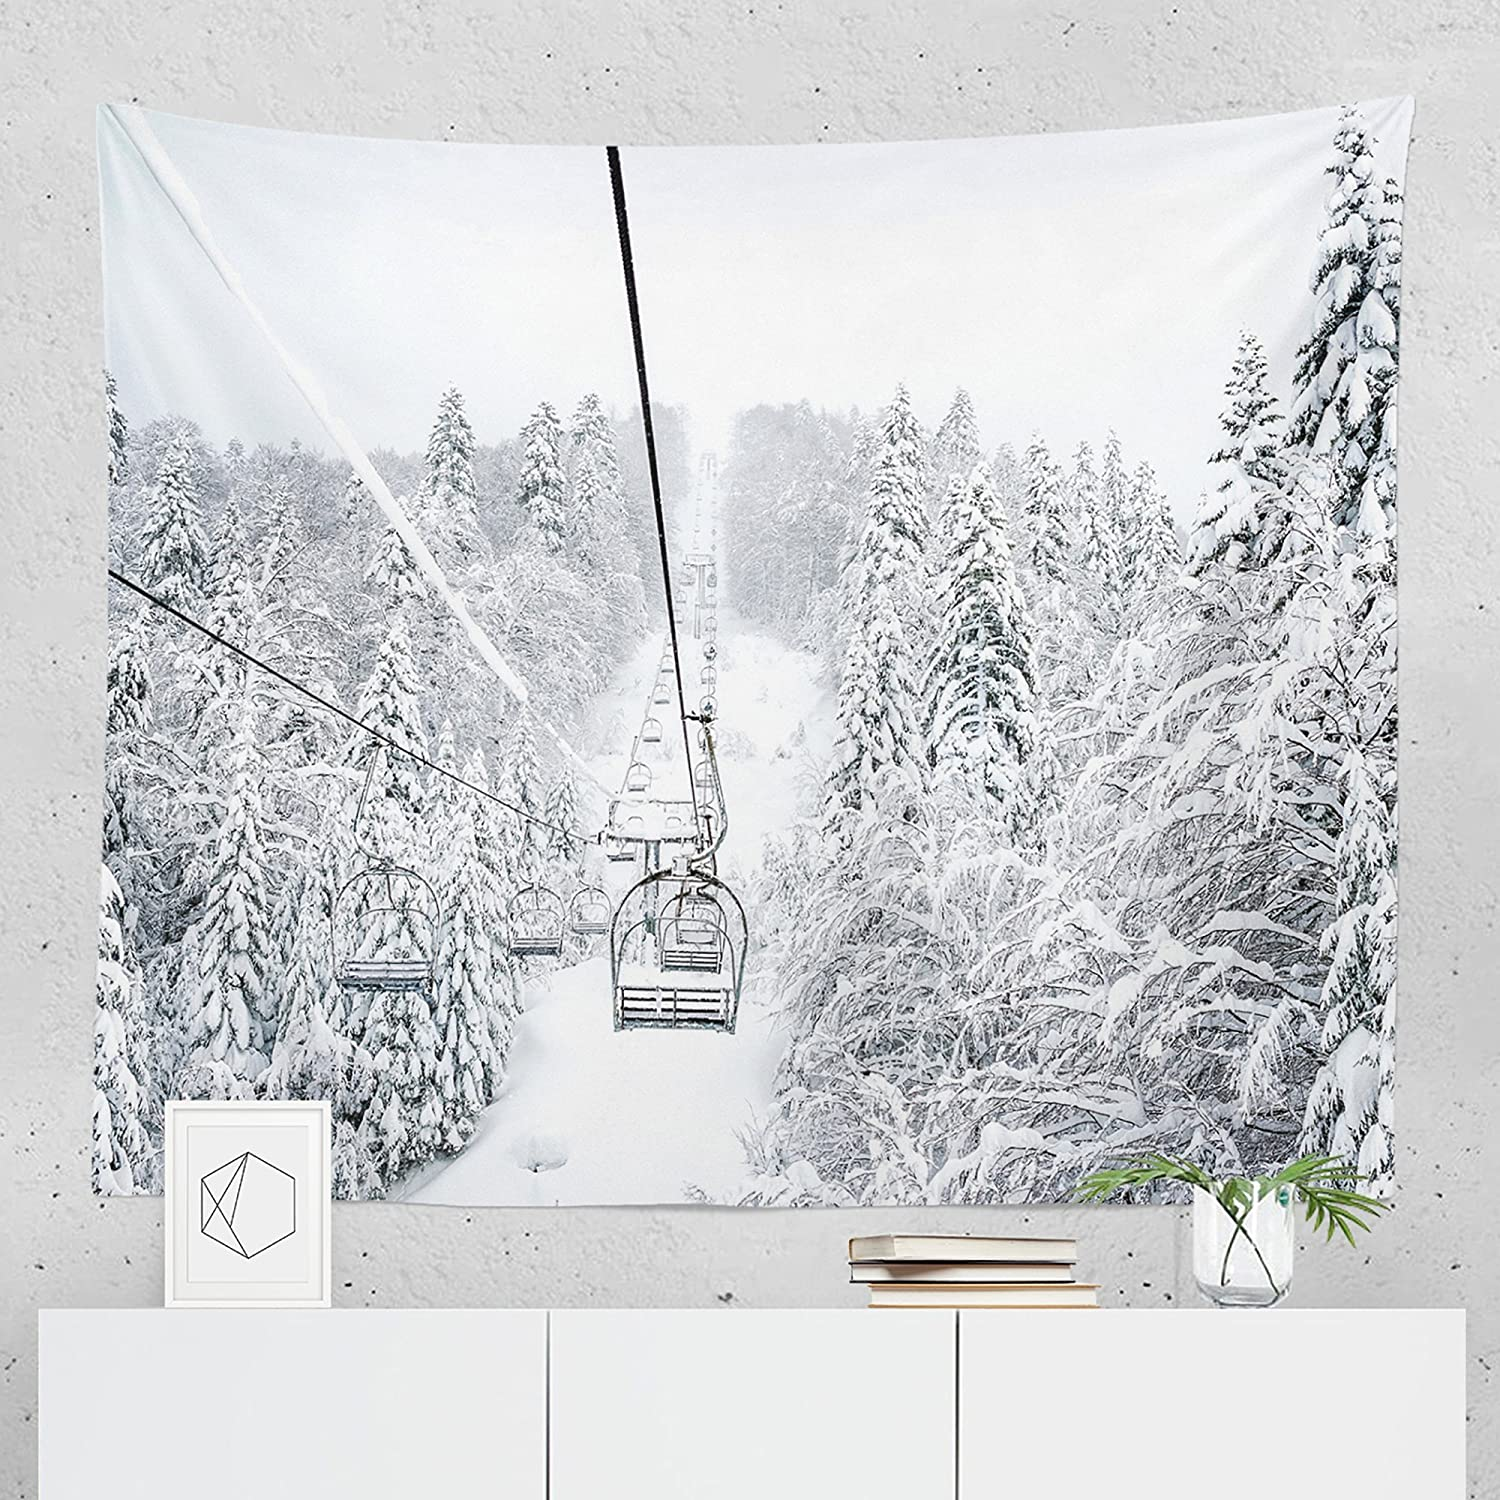 Winter Skiing Tapestry - Mountain Ski Snowy Lift Wall Tapestries Hanging Décor Bedroom Dorm College Living Room Home Art Print Decoration Decorative - Printed in the USA - Small Medium Large Sizes